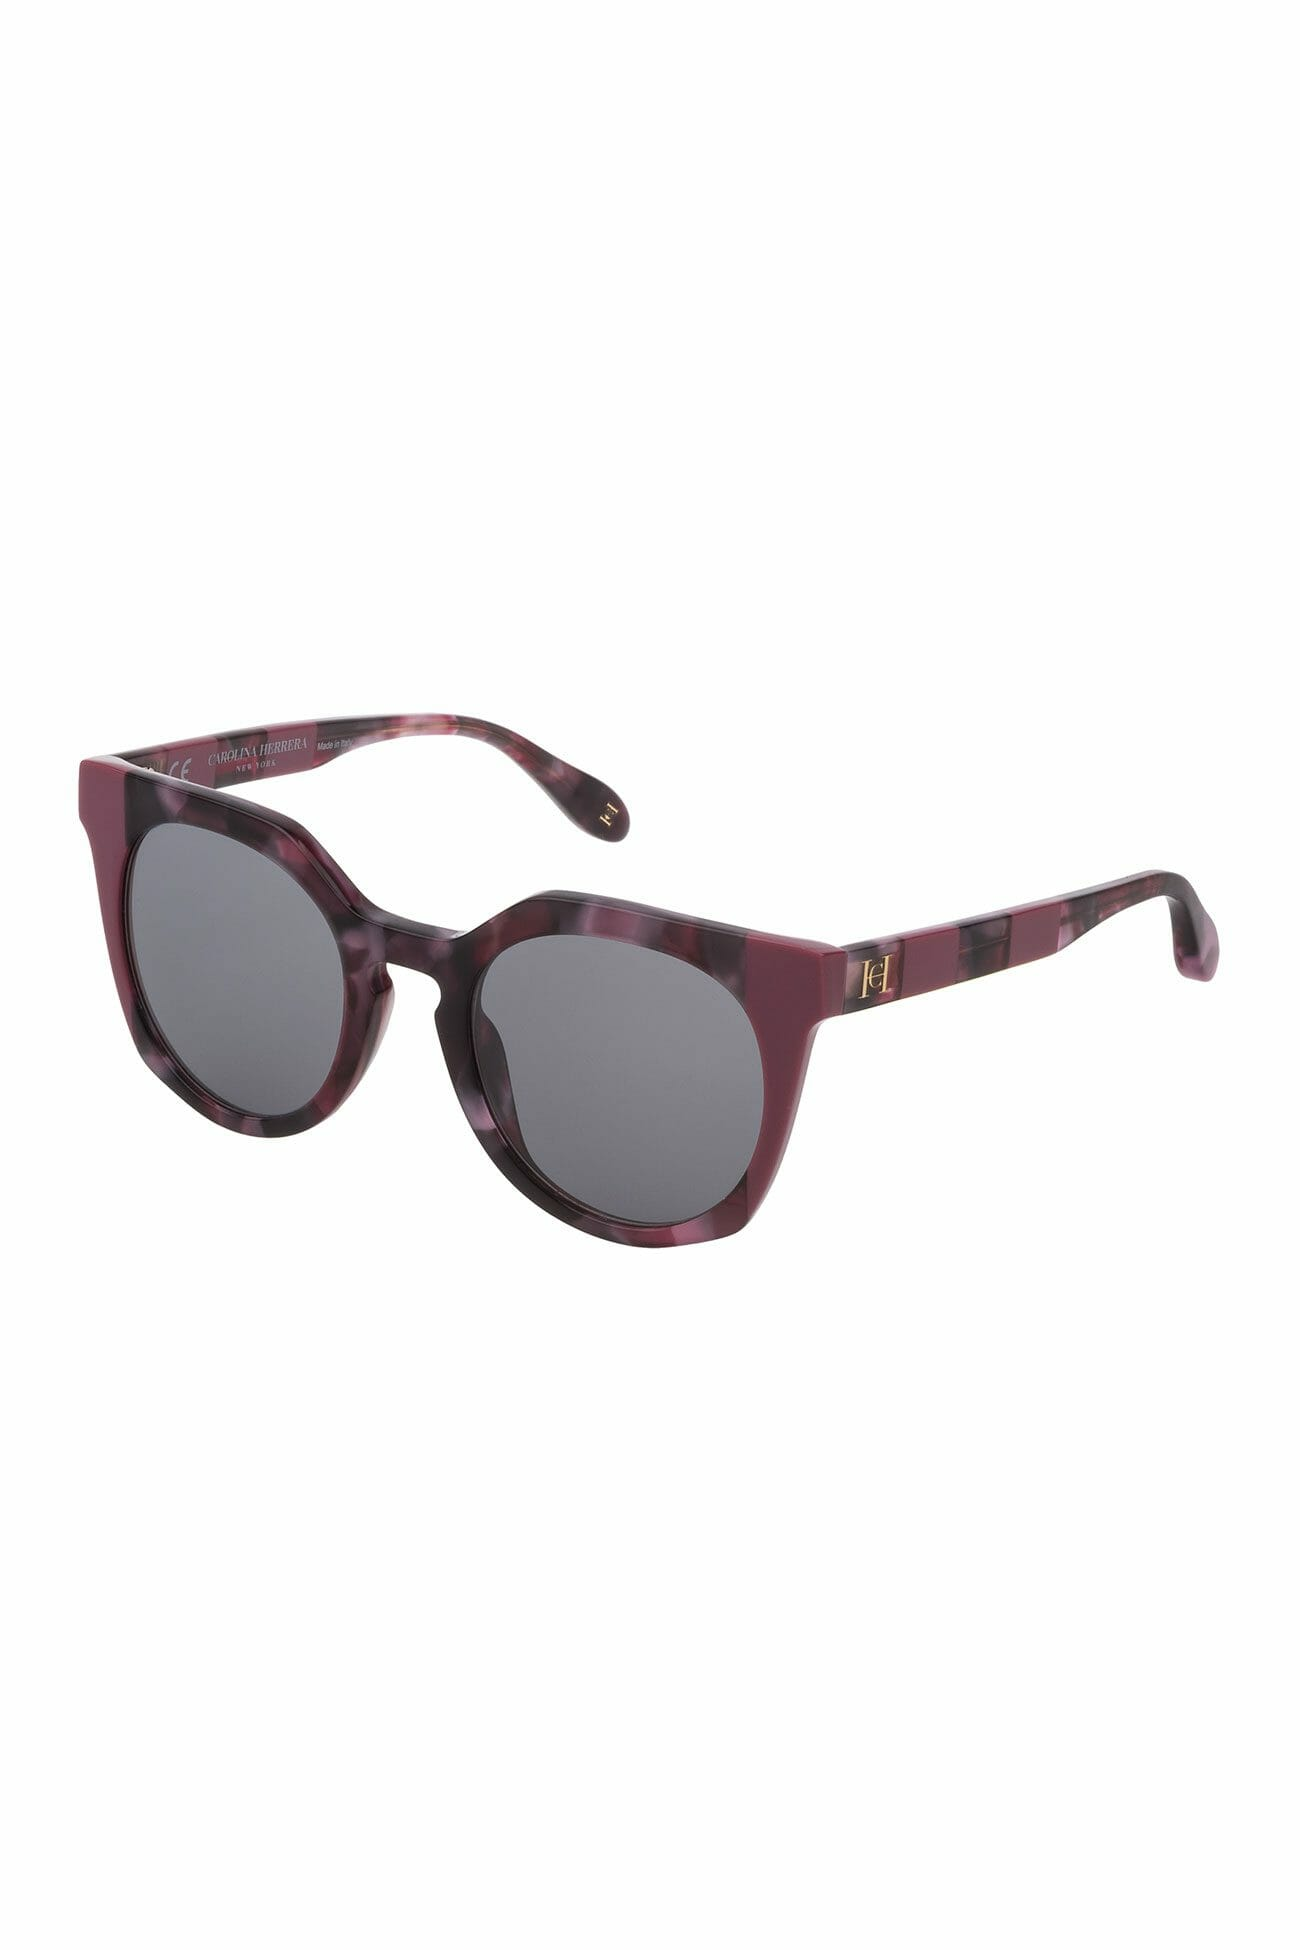 CHNY-Carolina-Herrera-New-York-Eyewear-Women